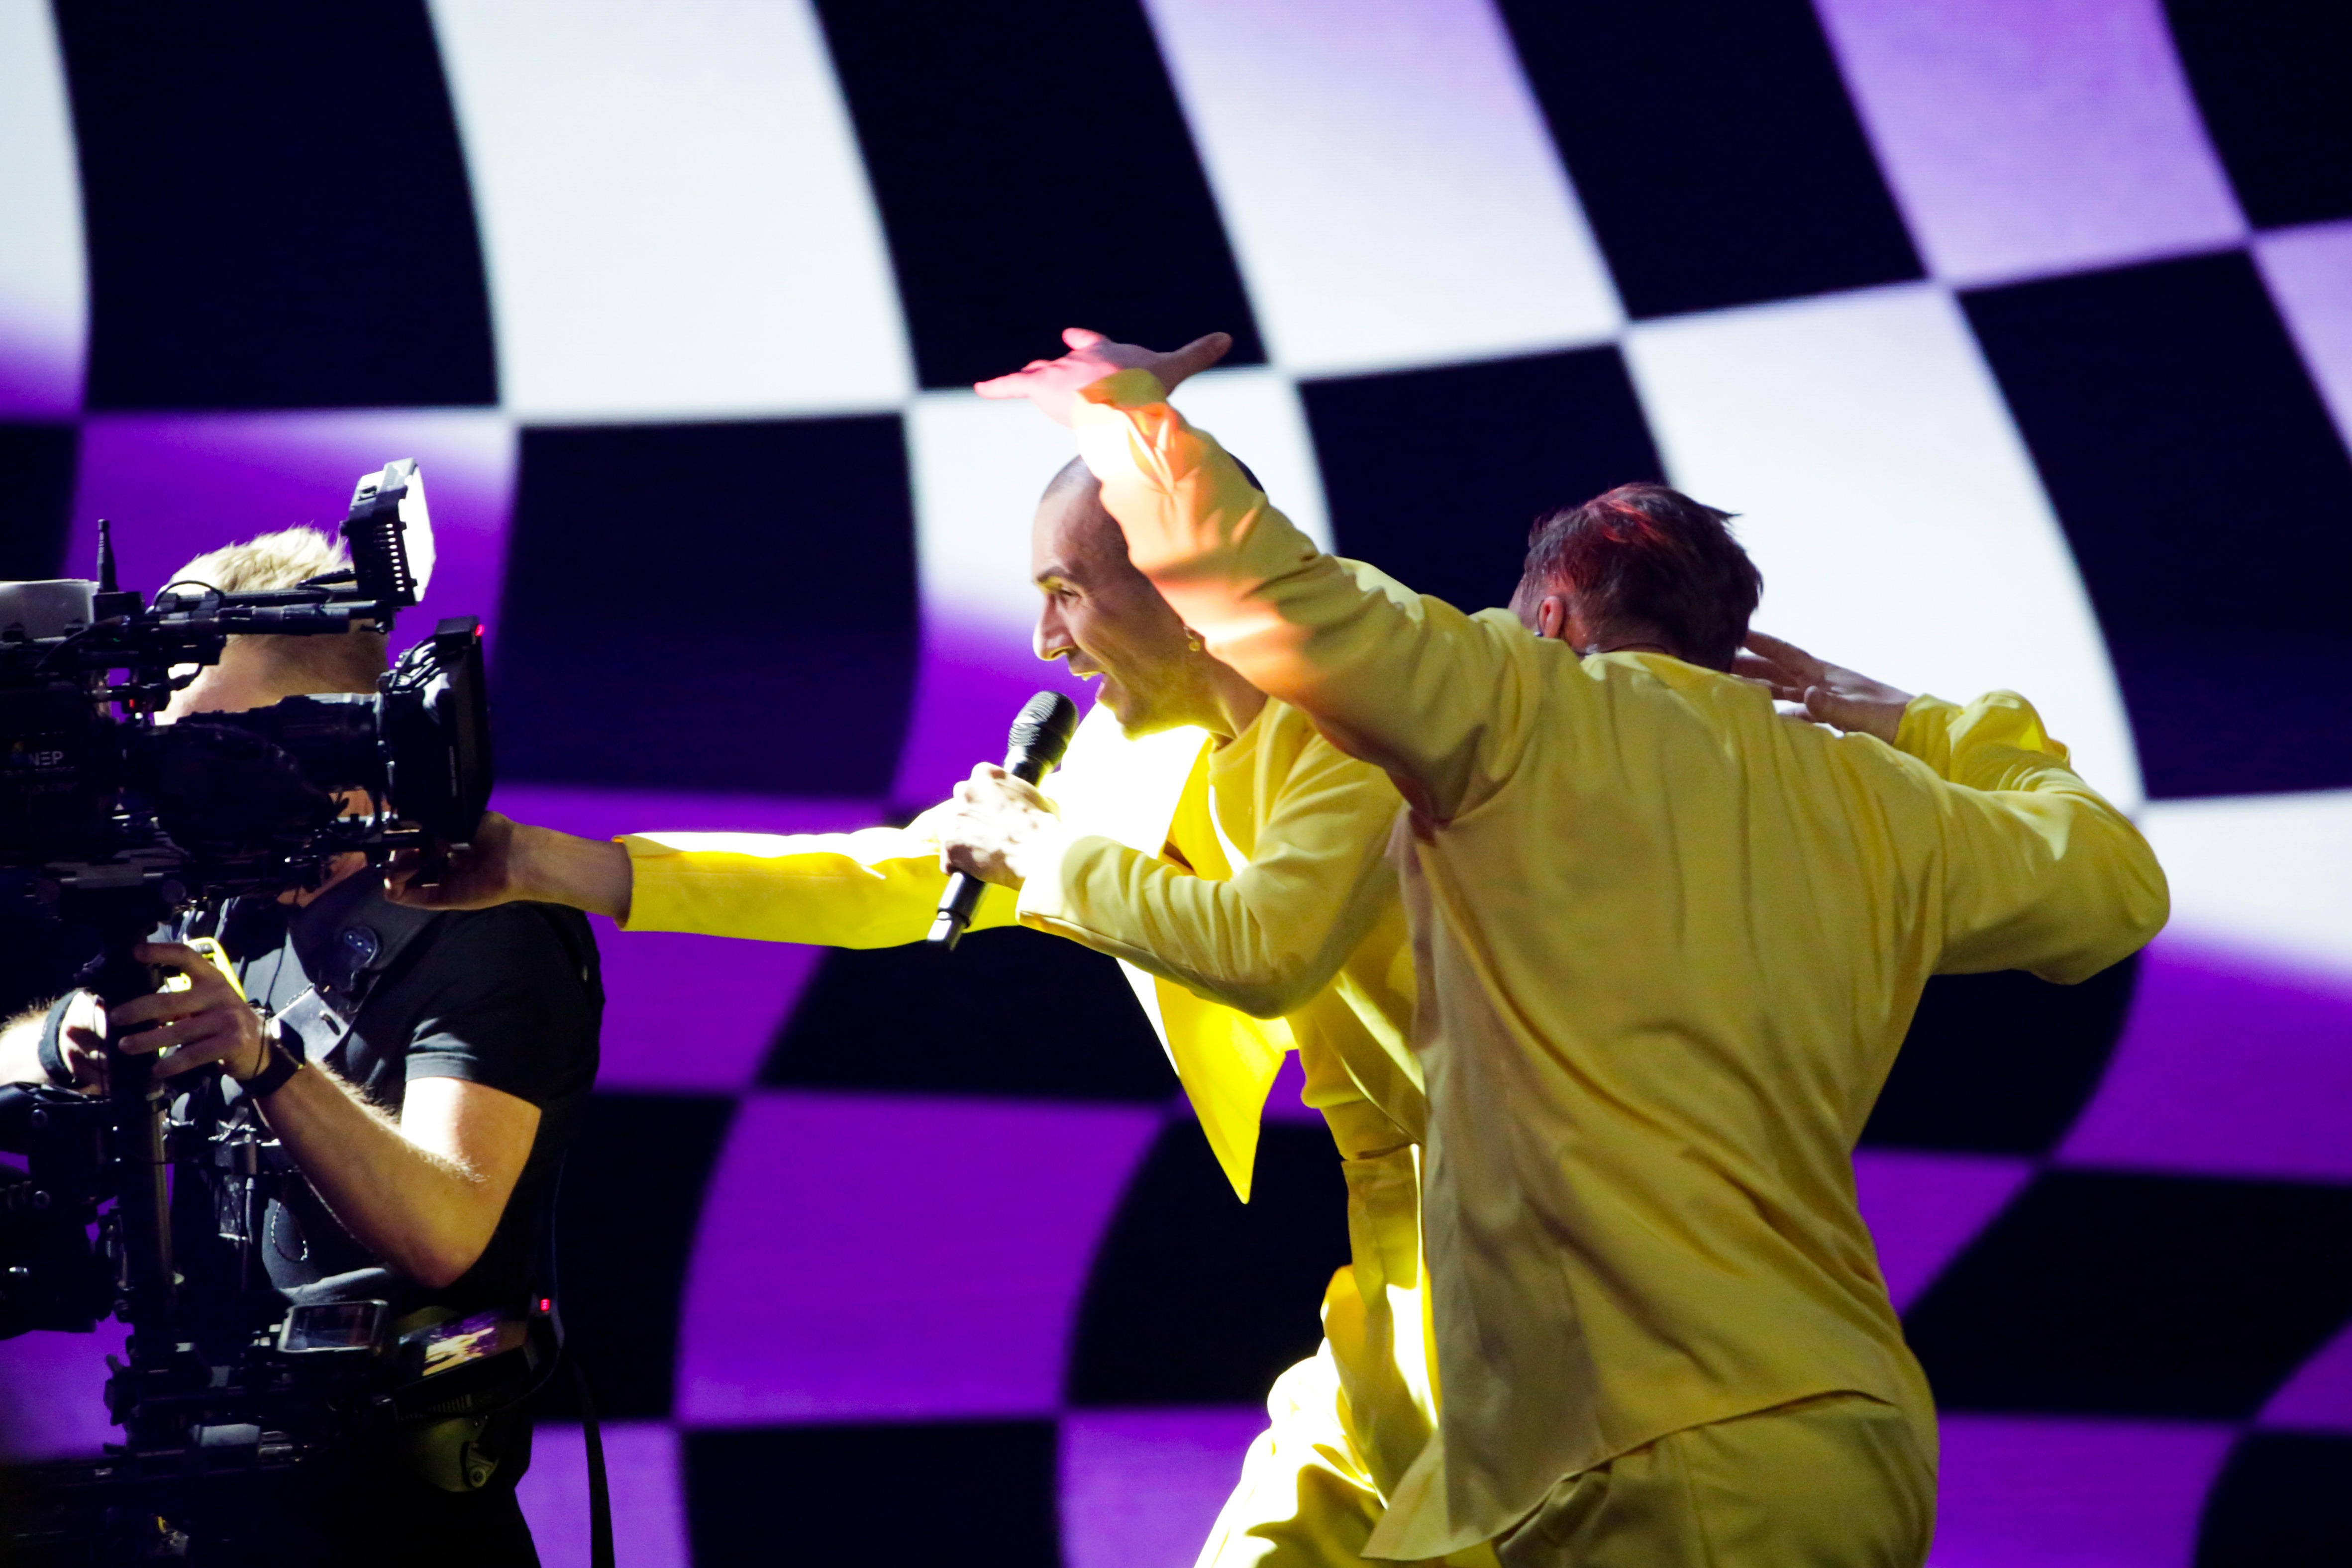 Lithuania second rehearsal